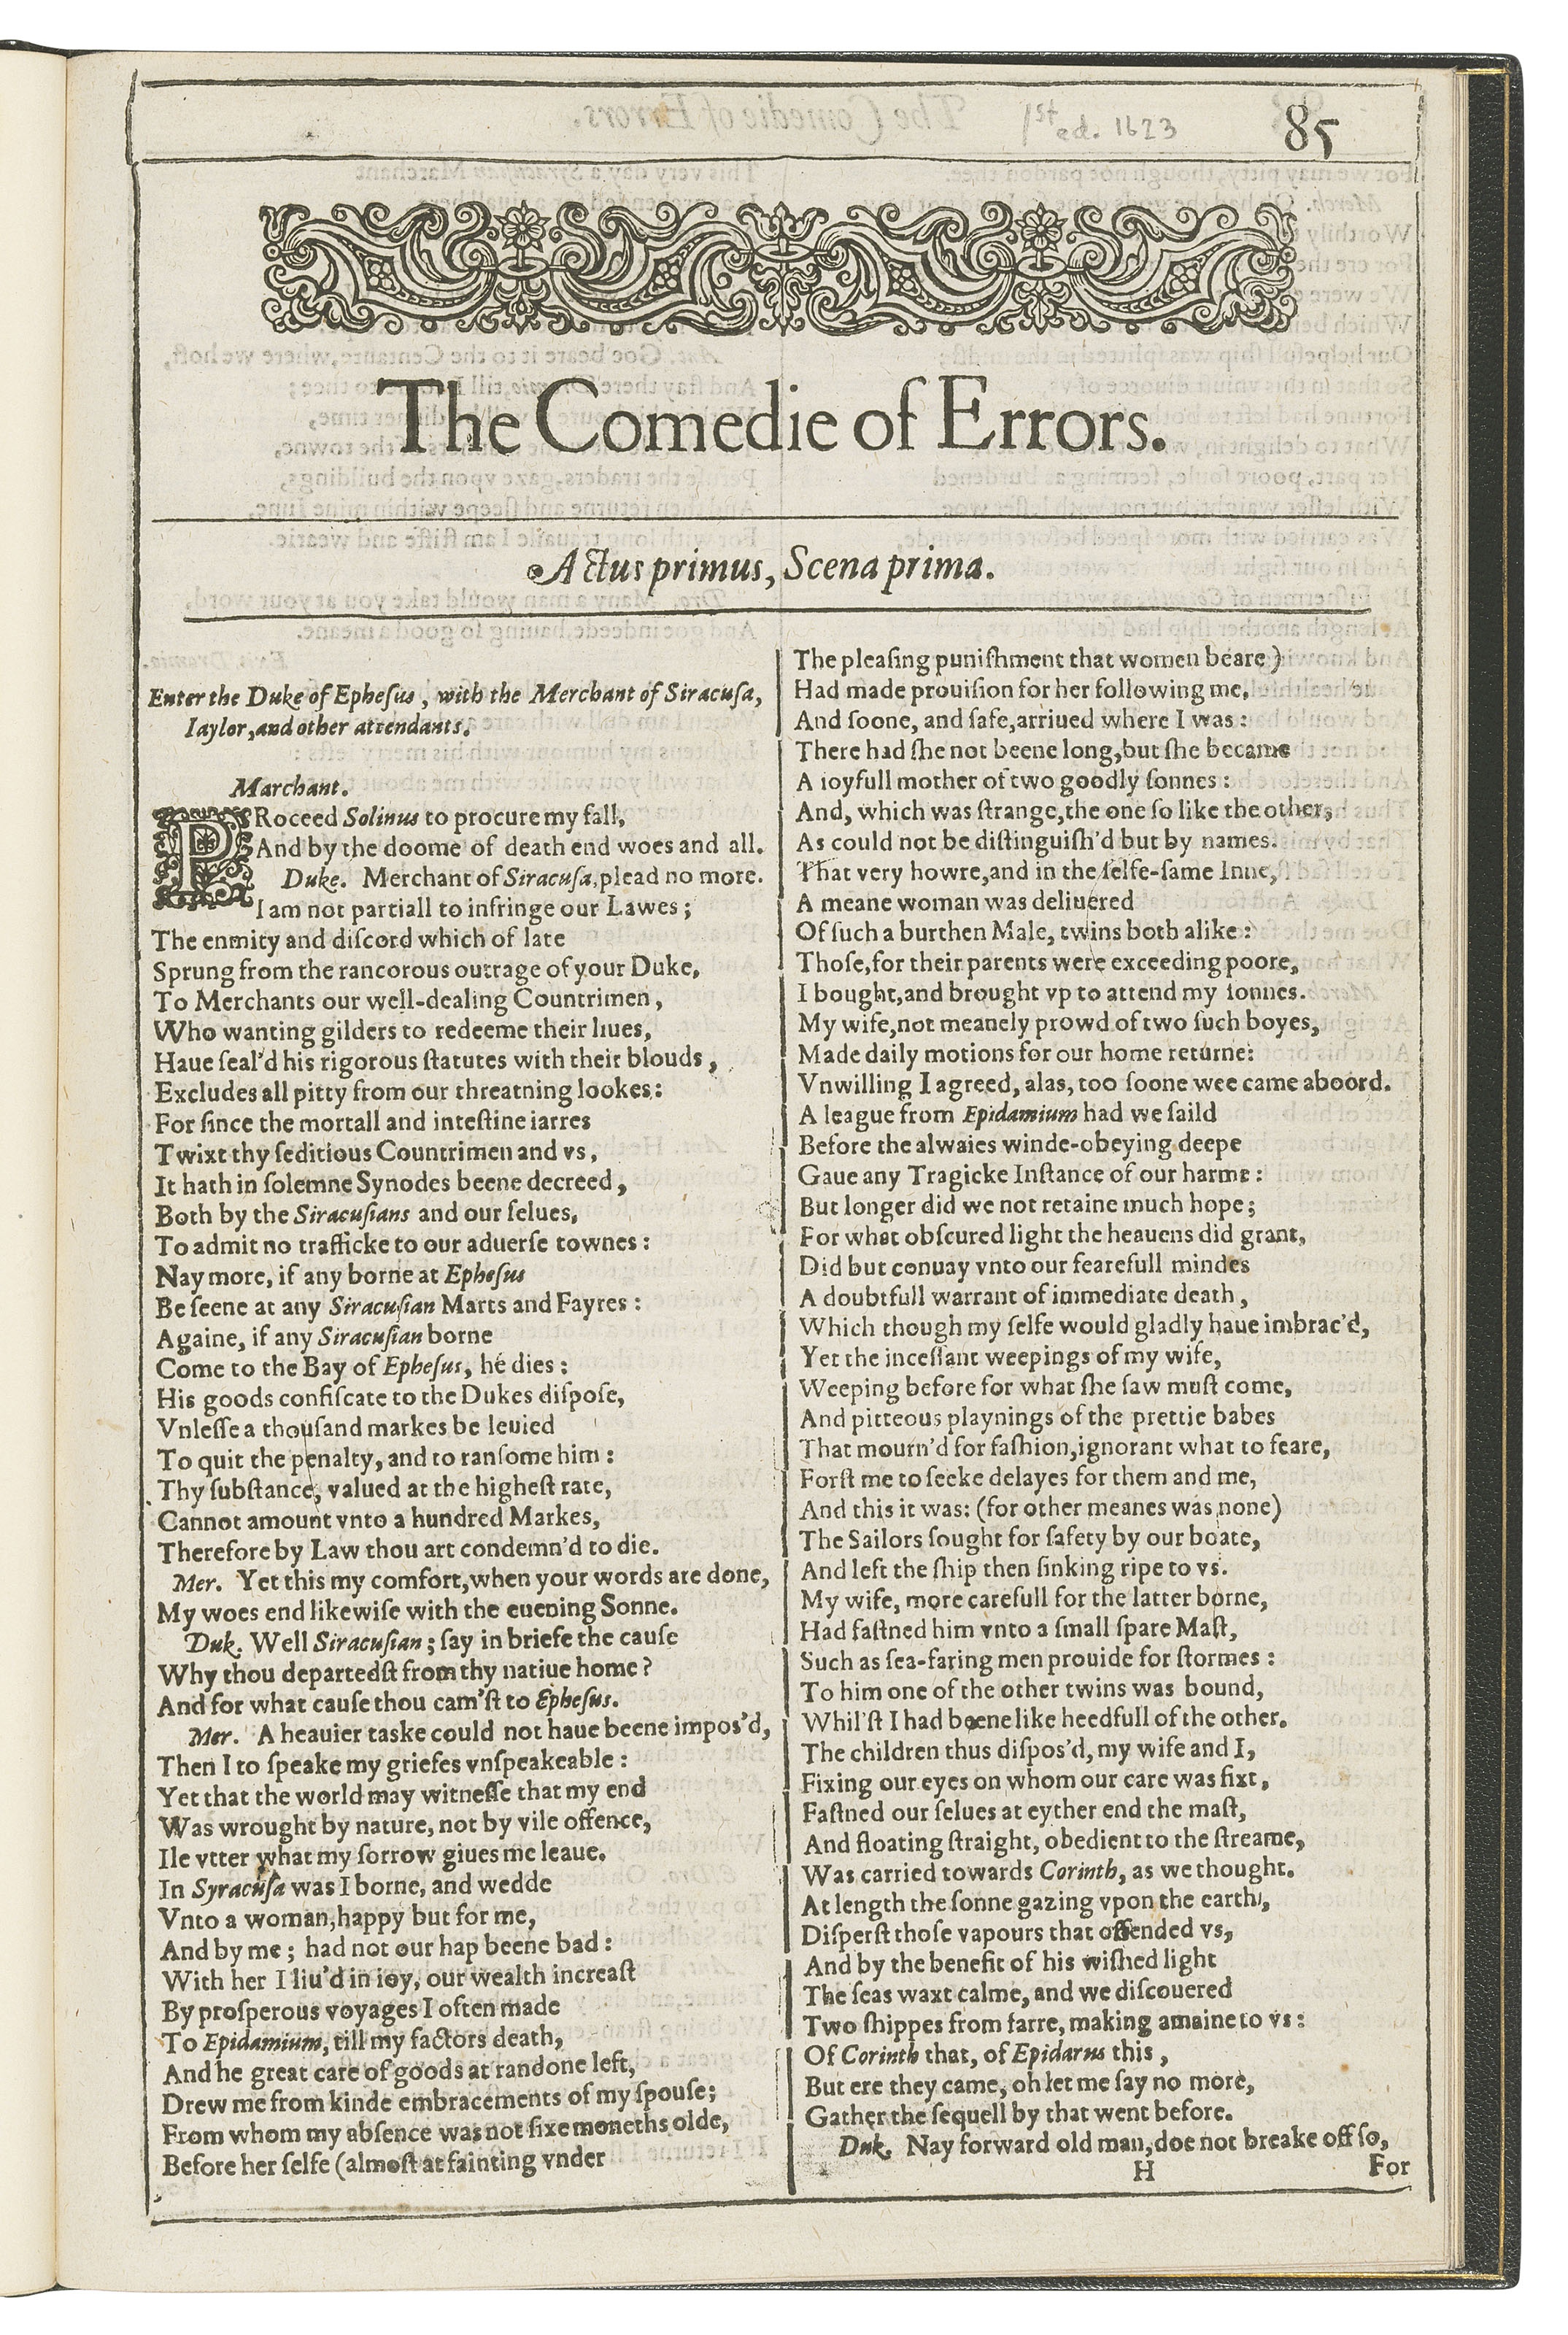 SHAKESPEARE, William (1564-1616). The Comedie of Errors [extracted from: Mr. William Shakespeares Comedies, Histories, & Tragedies. London: Isaac Jaggard and Edward Blount, 1623].